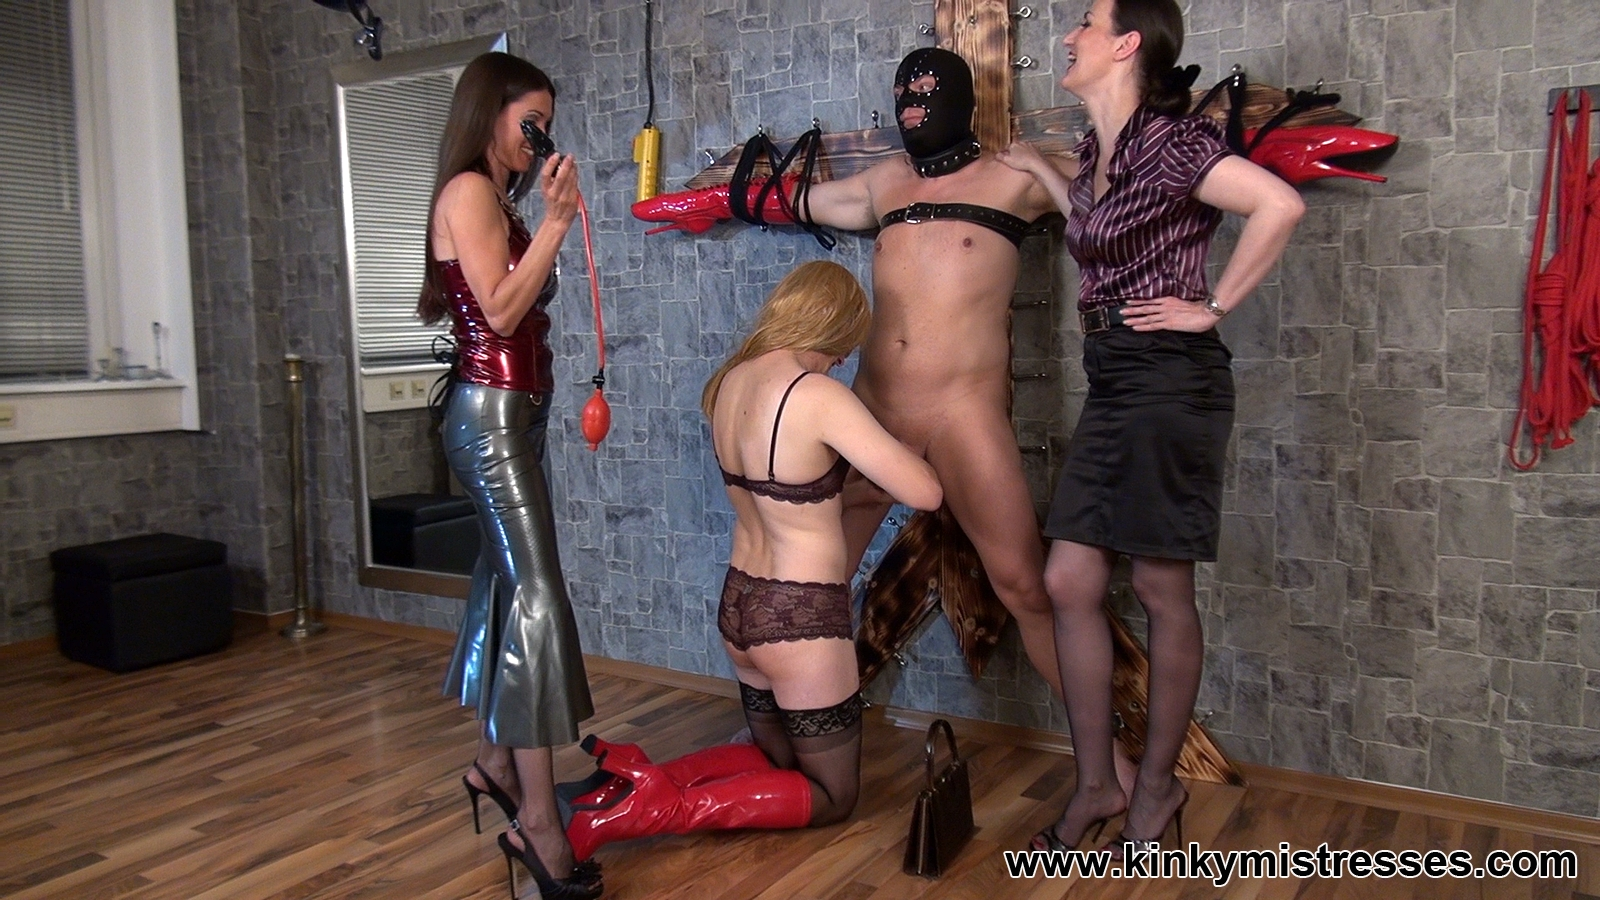 Pantyboy Humiliation Dress Up Assignment